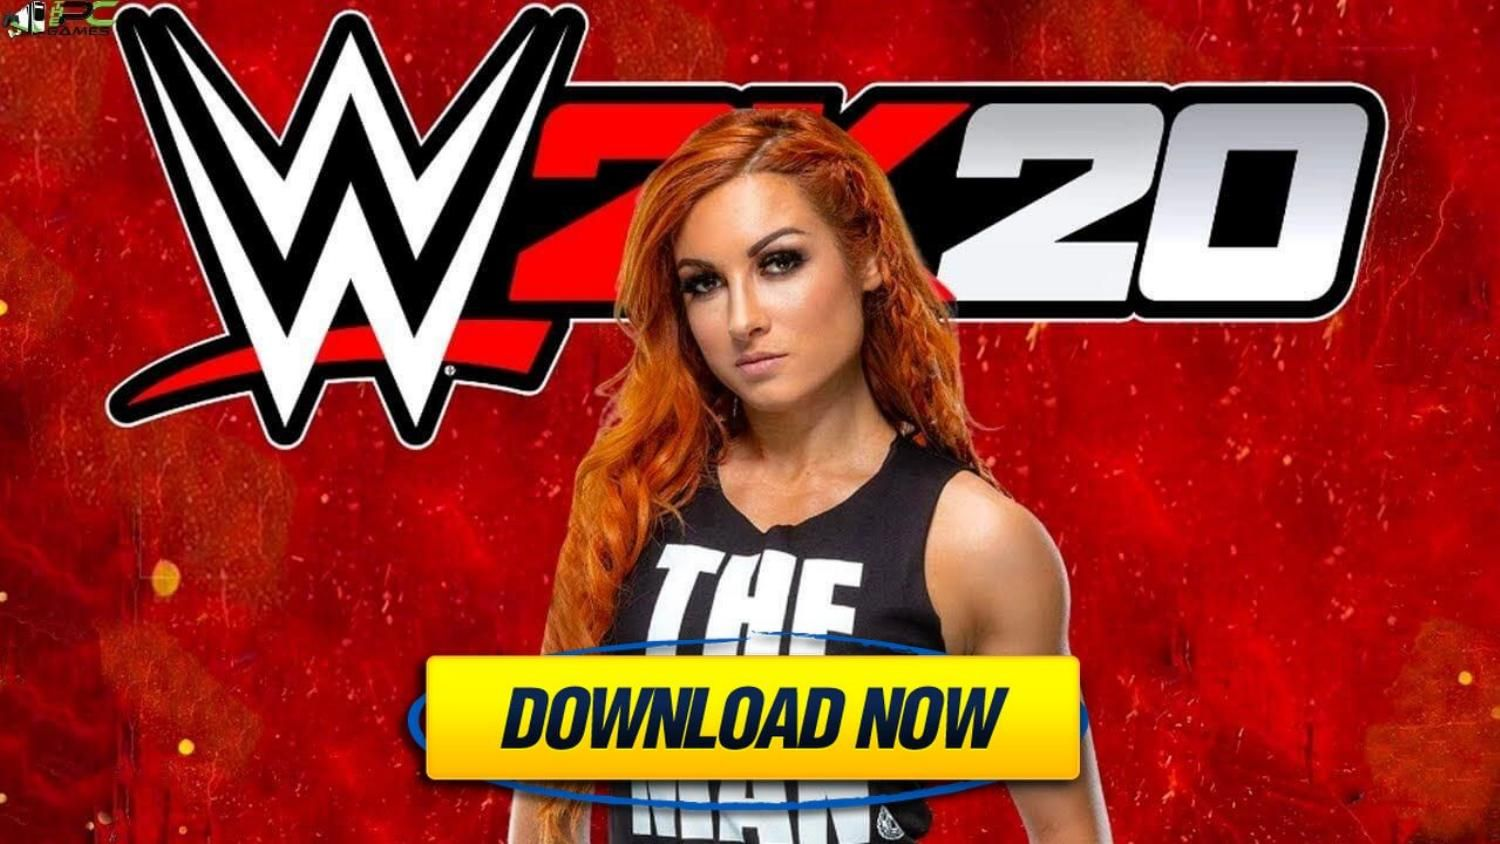 WWE 2K20 PC Game Download in 2020 Pc games download